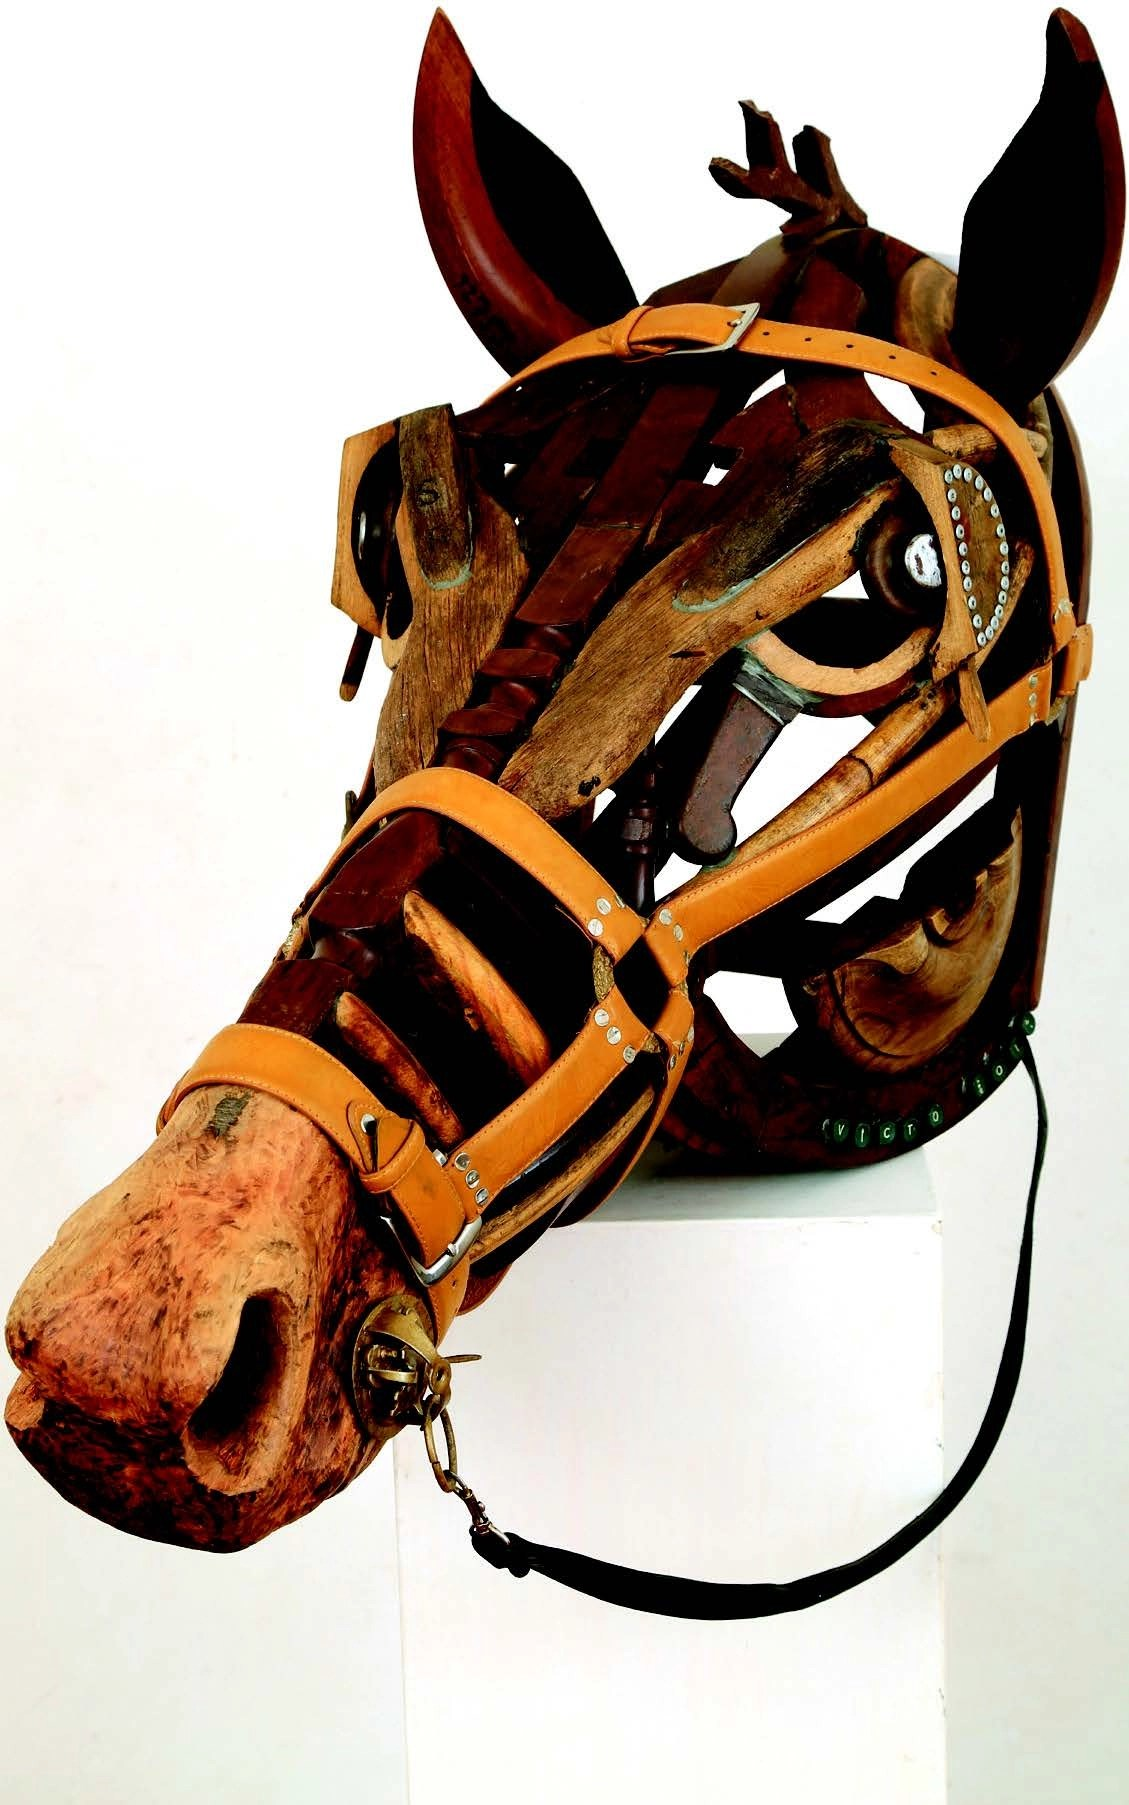 Victor Nyakauru, Rare Mare, 2014, Wood and Leather, 102 x 44 x 62 cm